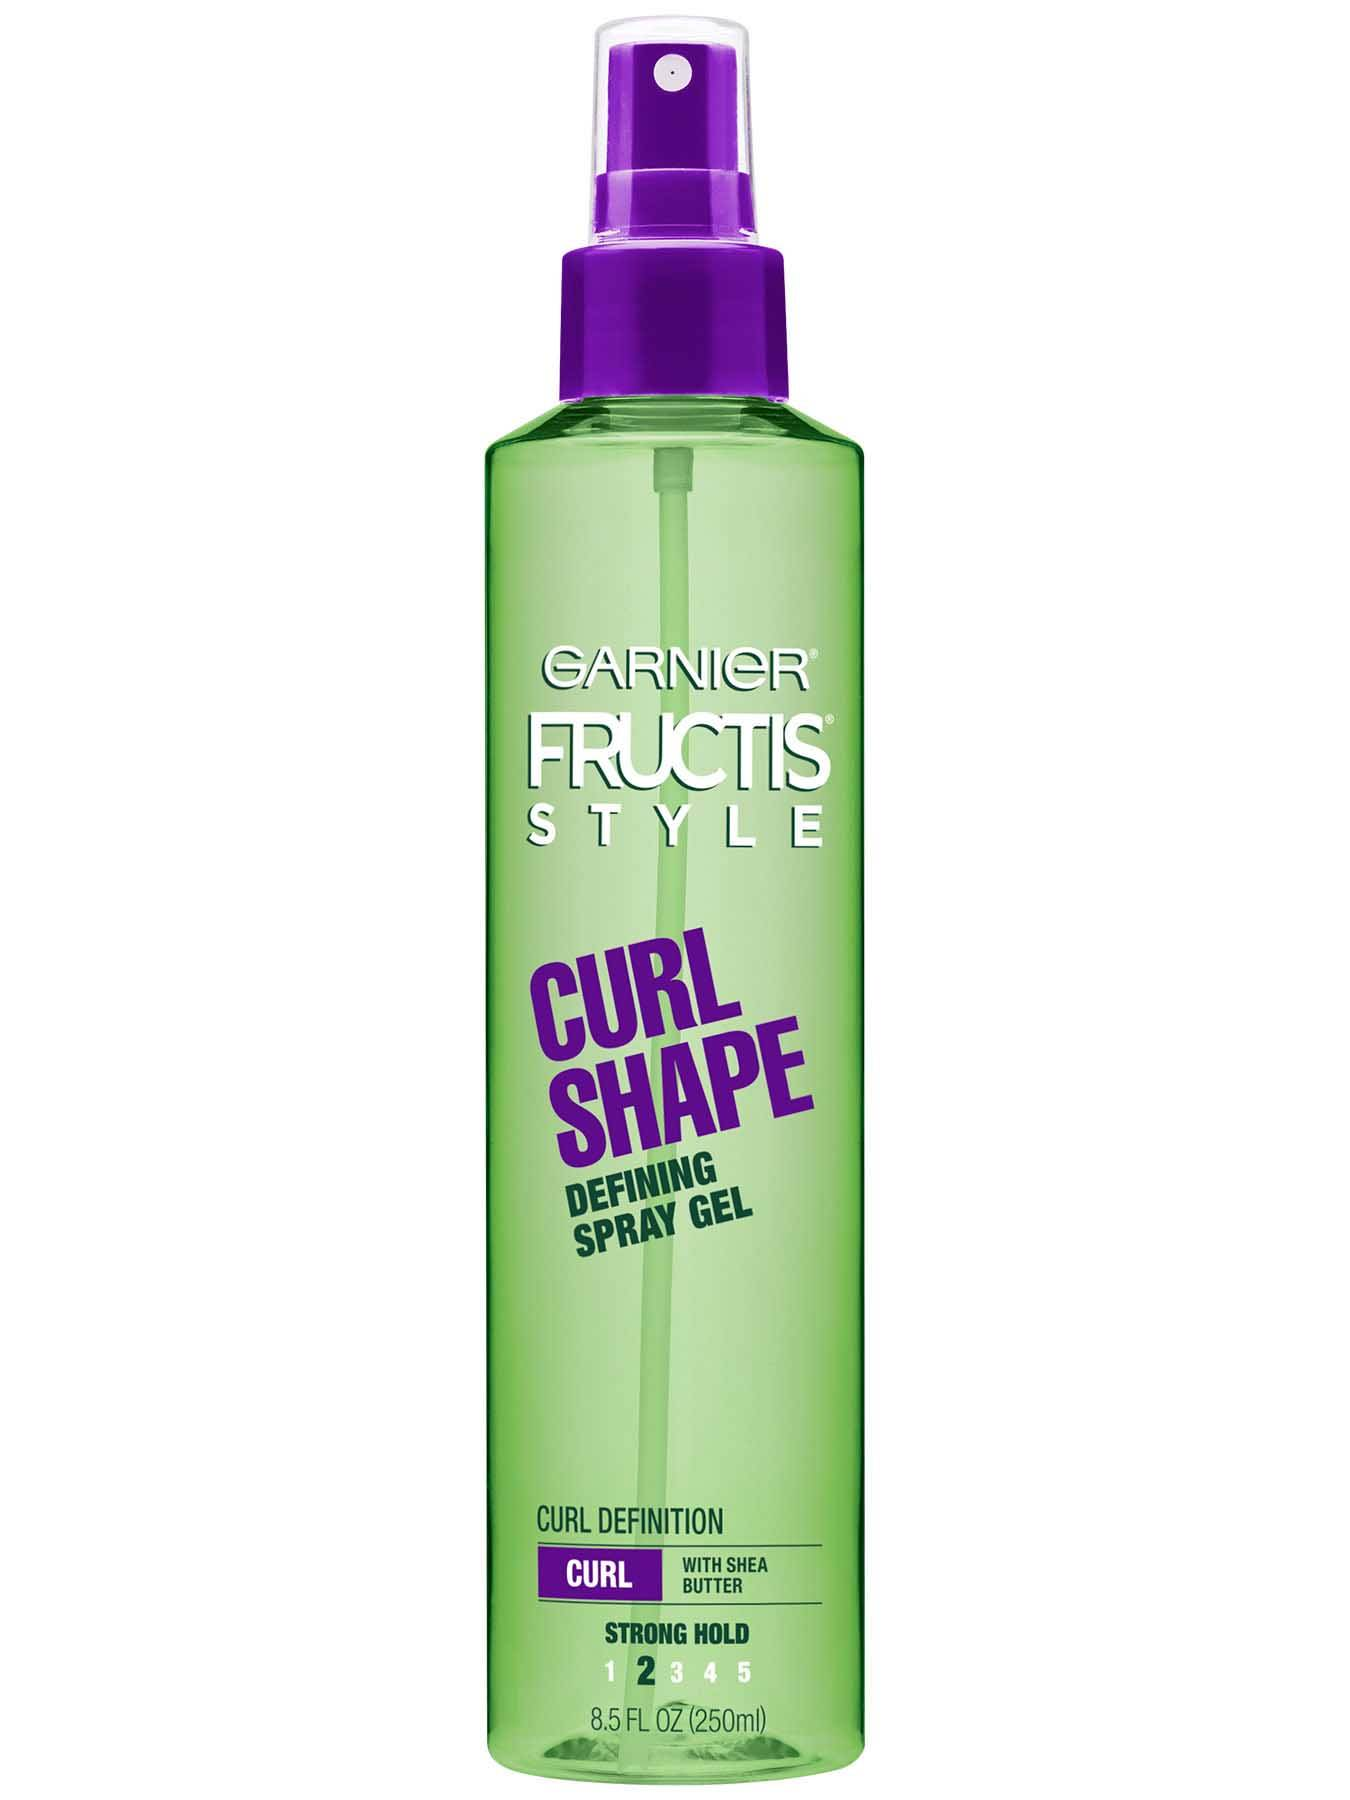 Front view of Curl Shape Defining Spray Gel.